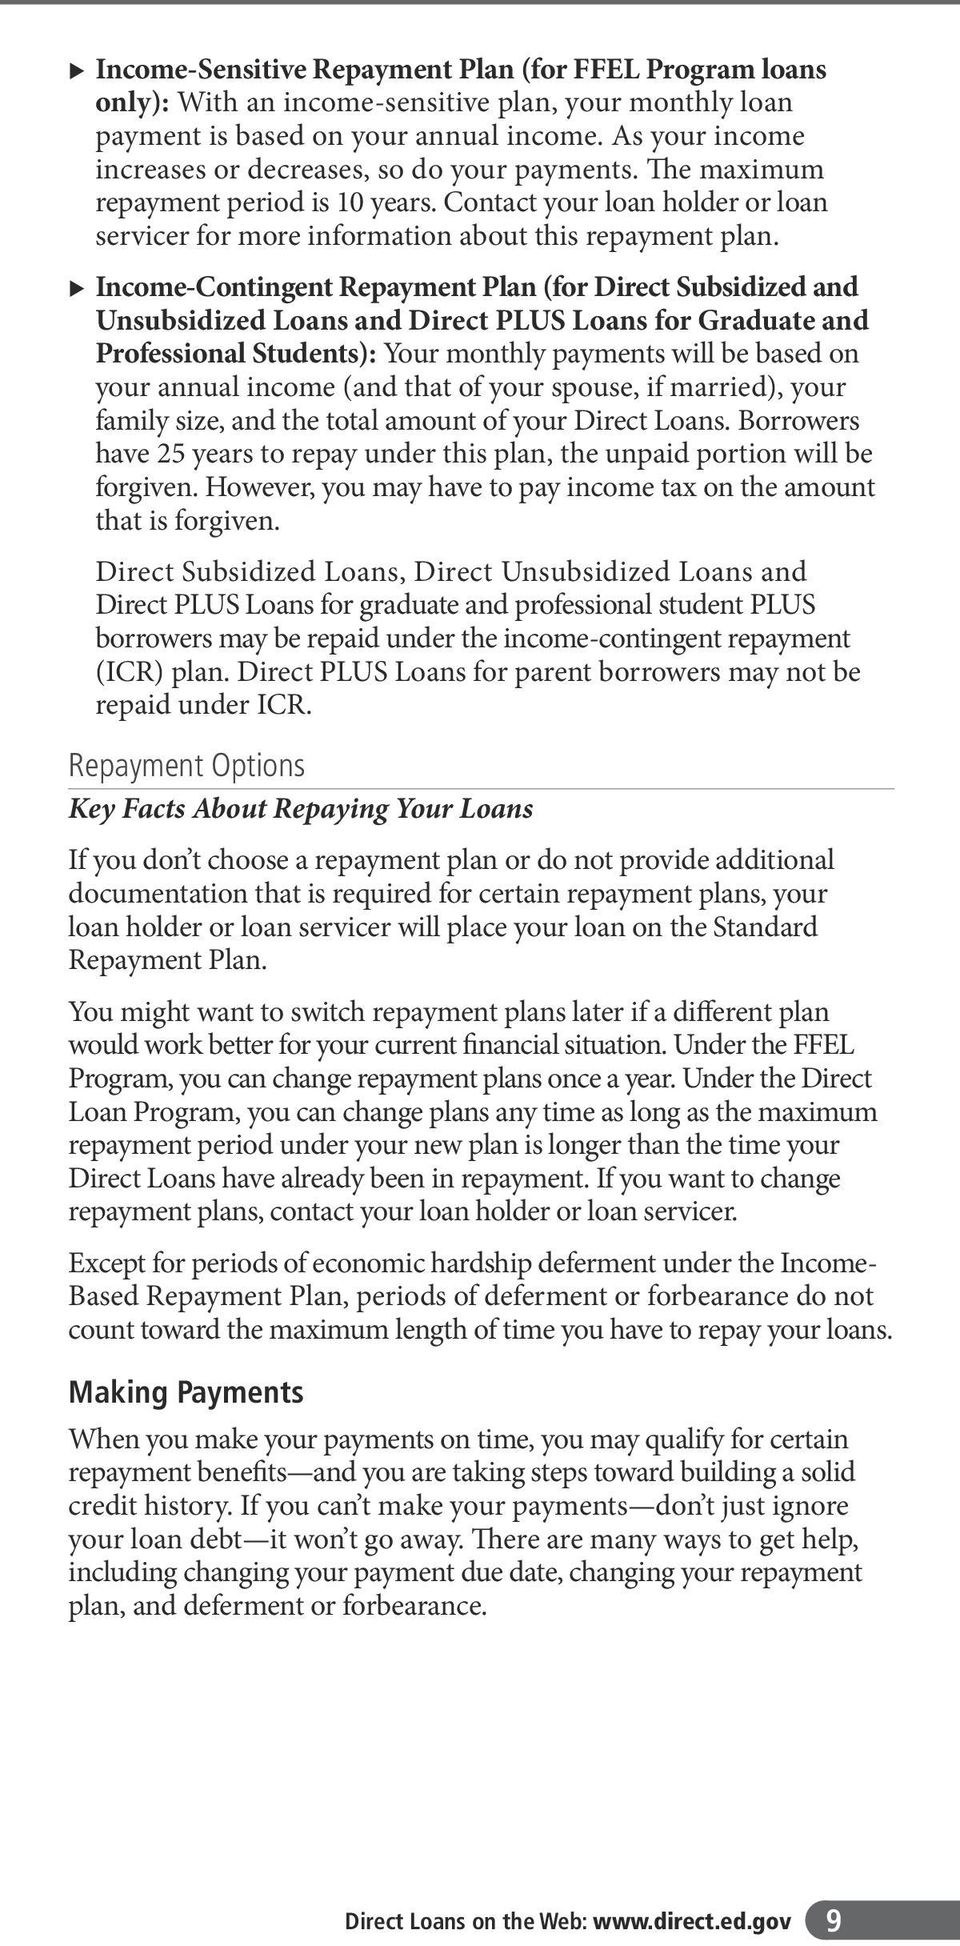 u Income-Contingent Repayment Plan (for Direct Subsidized and Unsubsidized Loans and Direct PLUS Loans for Graduate and Professional Students): Your monthly payments will be based on your annual